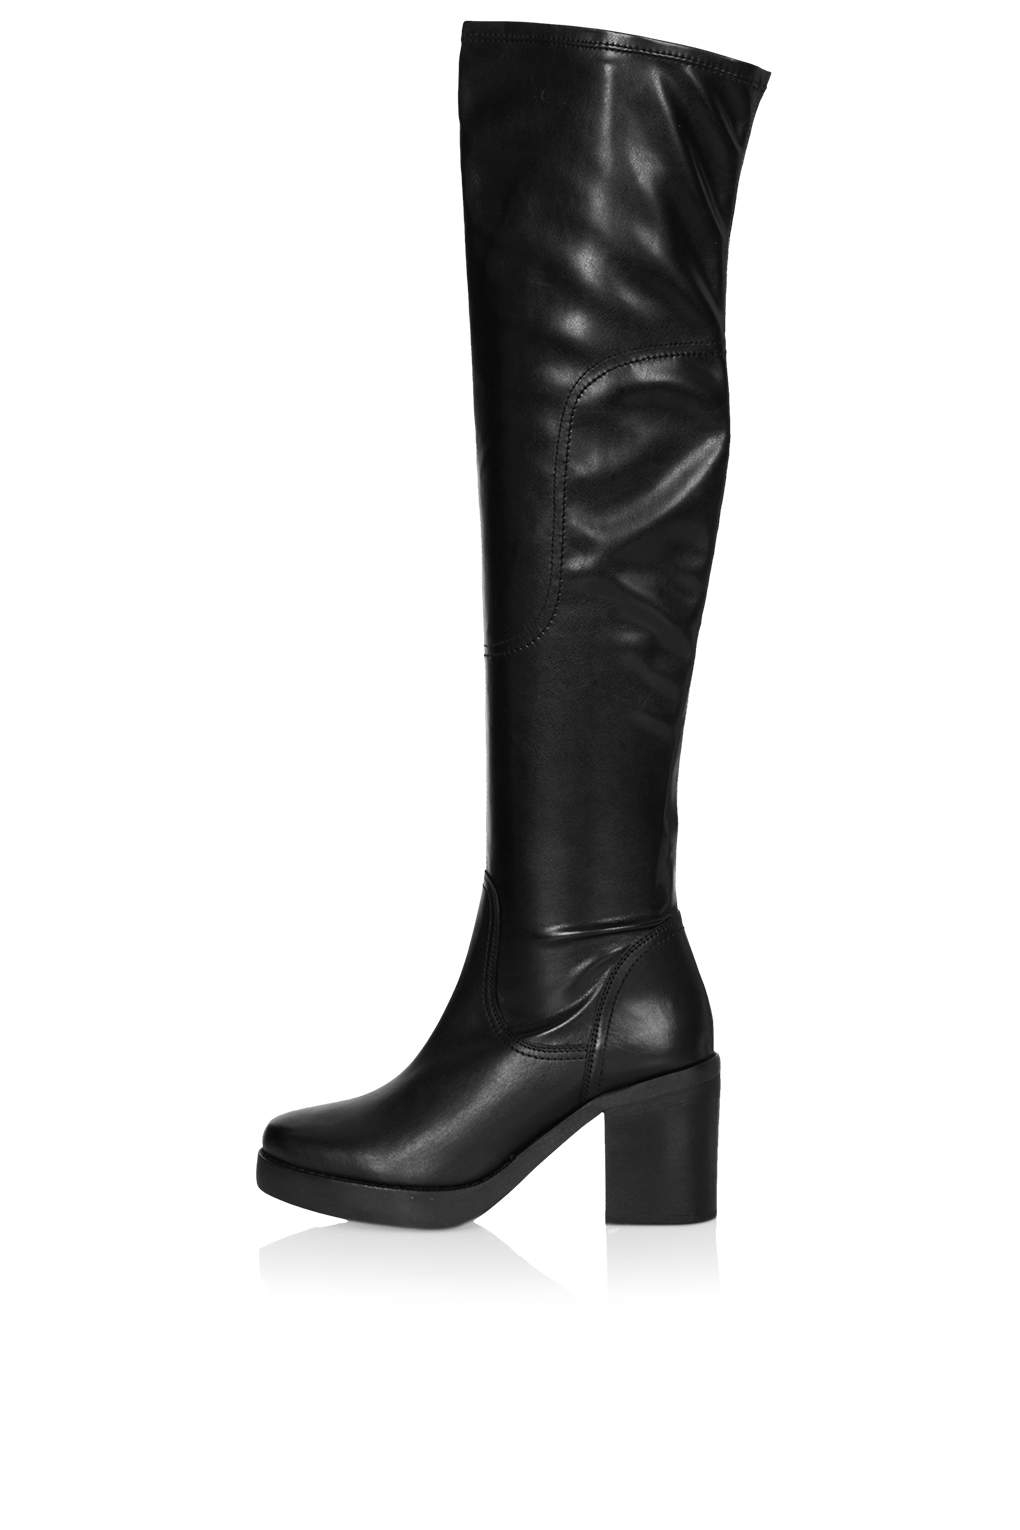 topshop clancy the knee boots in black lyst